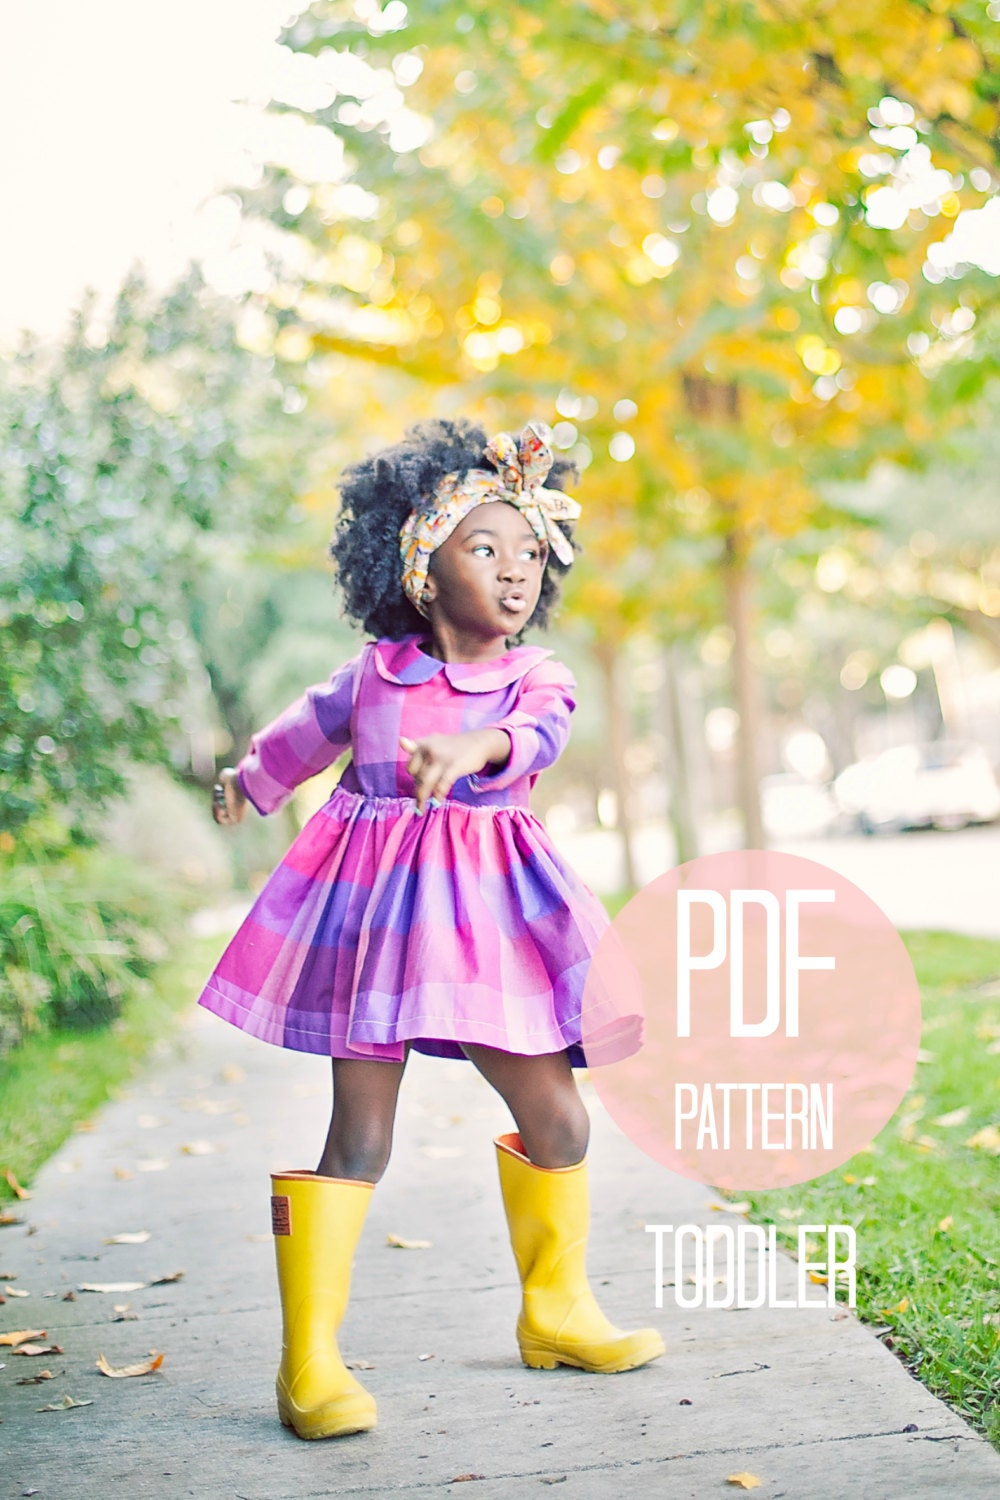 Toddler peter pan collar dress pattern pdf easy quick sewing zoom ombrellifo Gallery